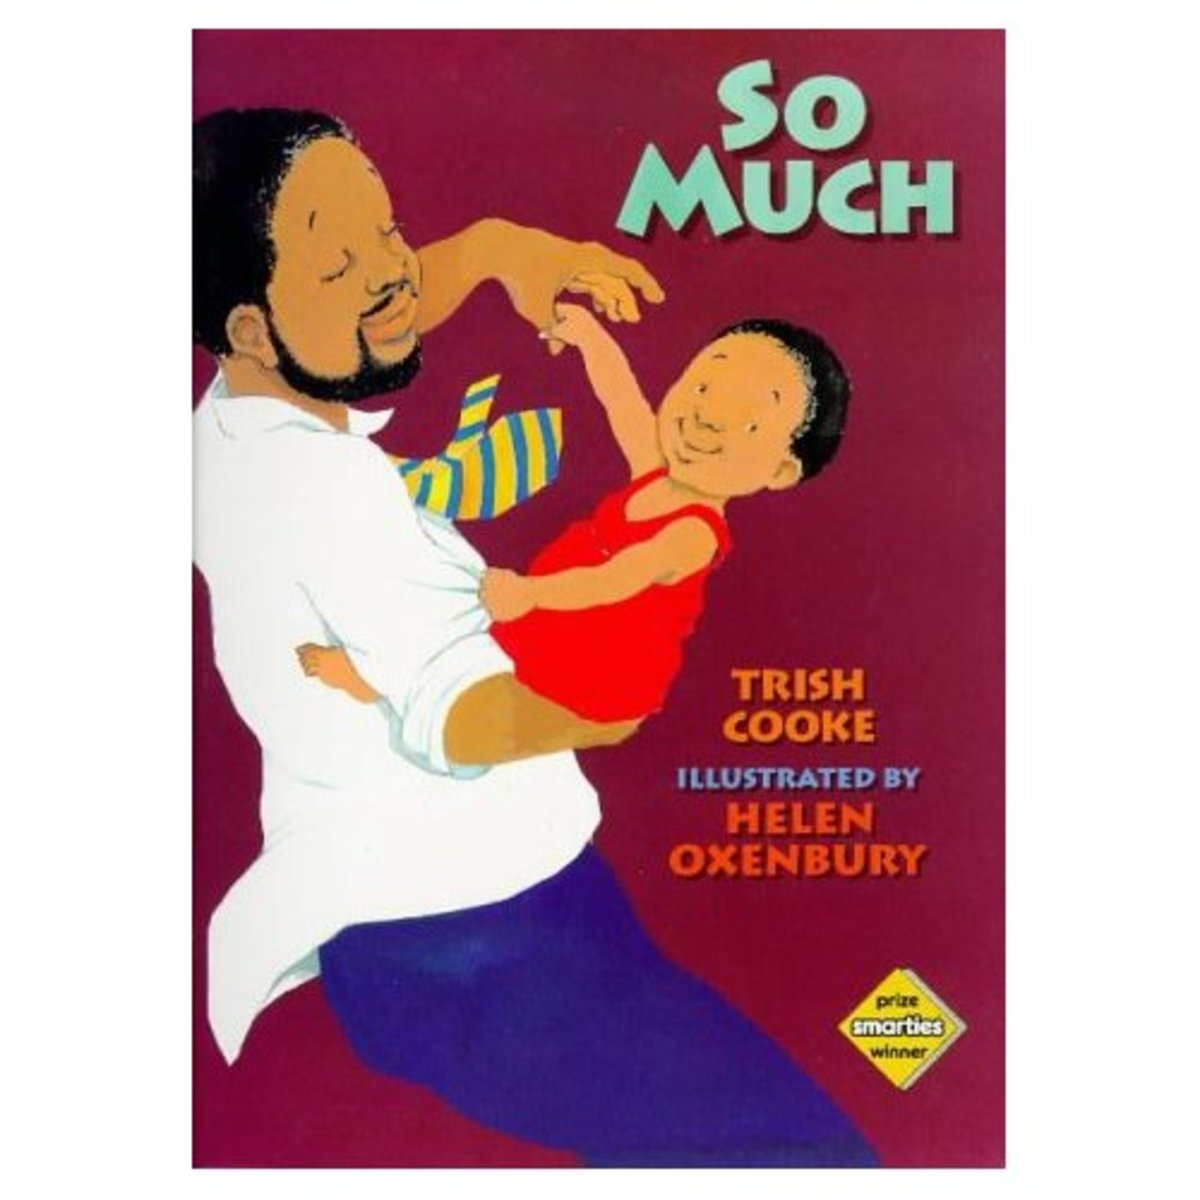 So Much by Helen Oxenbury and Trish Cooke is a children's picture book about family love and a birthday surprise!